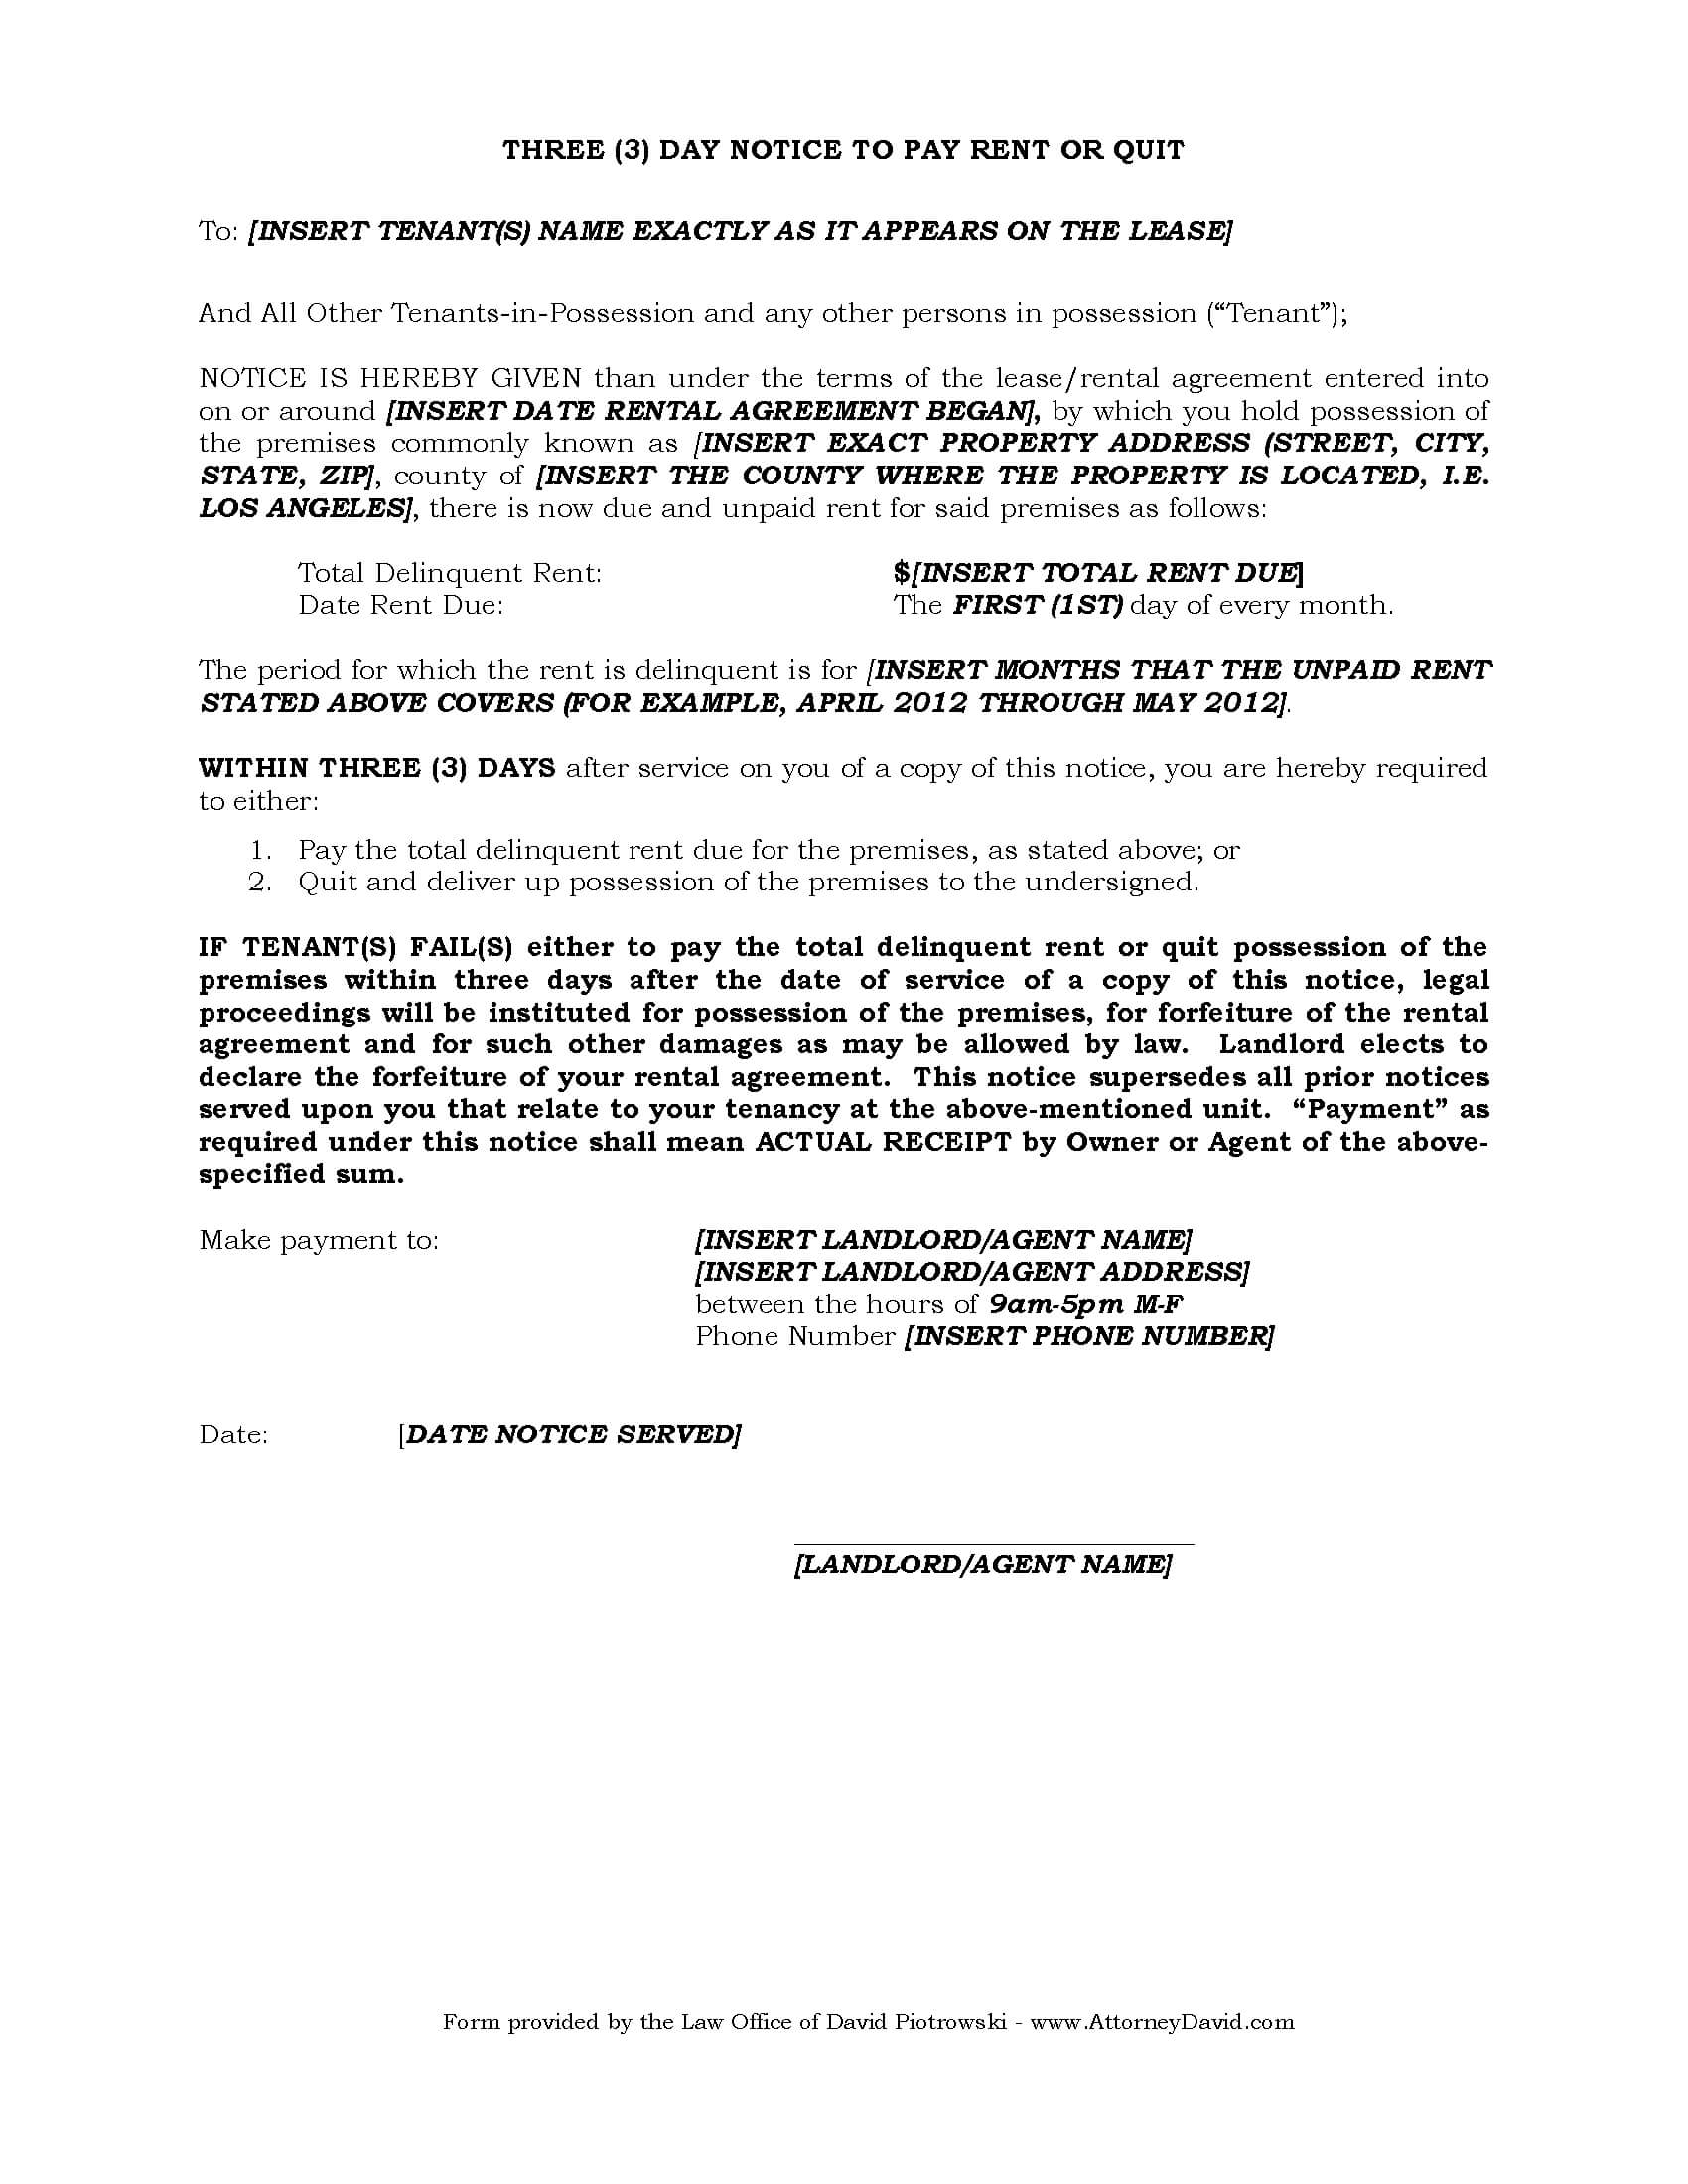 3 Day Eviction Notice For Non Payment Of Rent In California Throughout 3 Day Eviction Notice Template